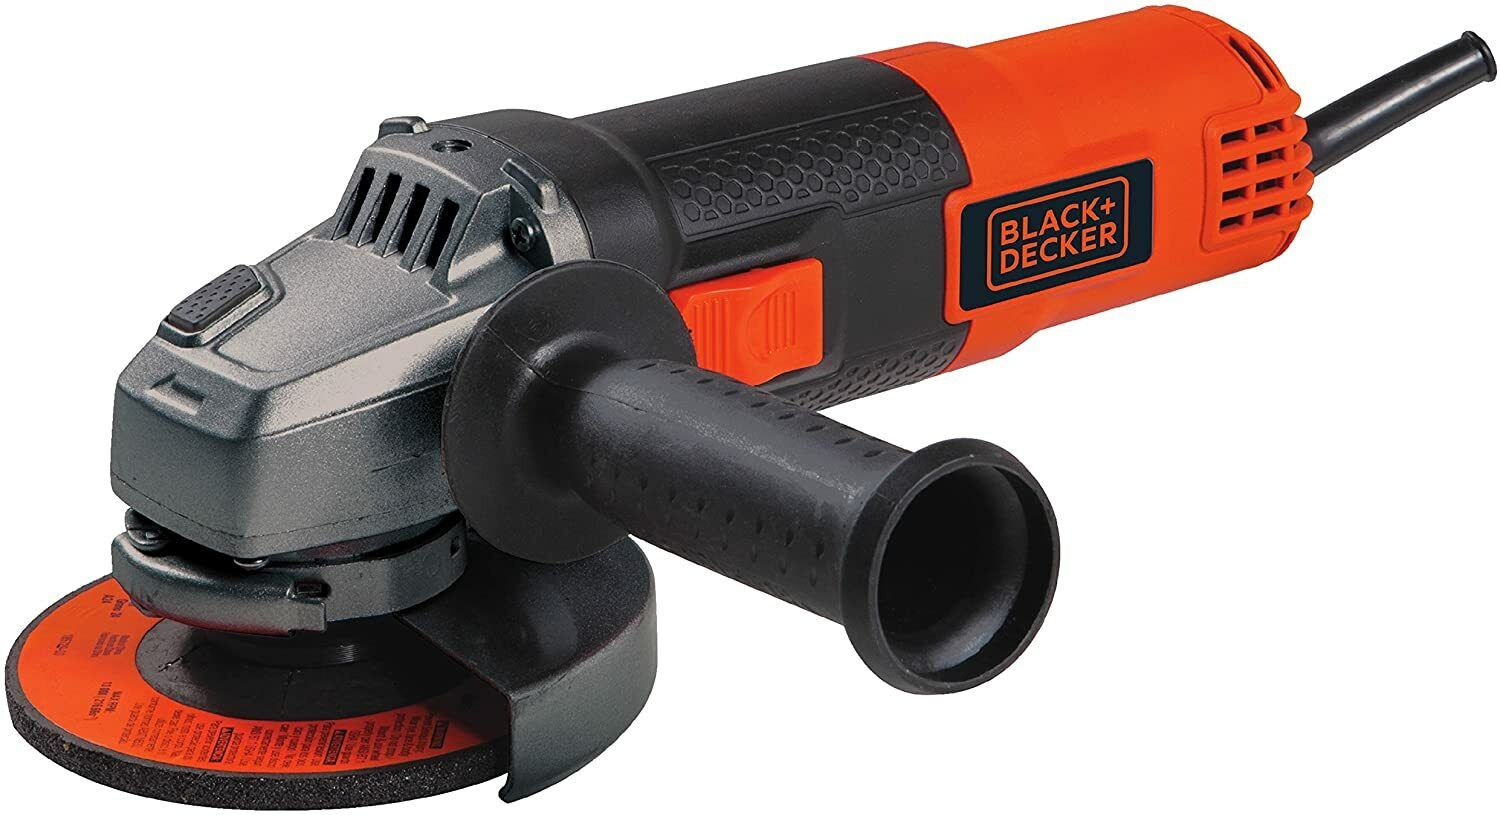 BLACK+DECKER Angle Grinder Tool, 4-1/2-Inch, 6.5-Amp . NEW